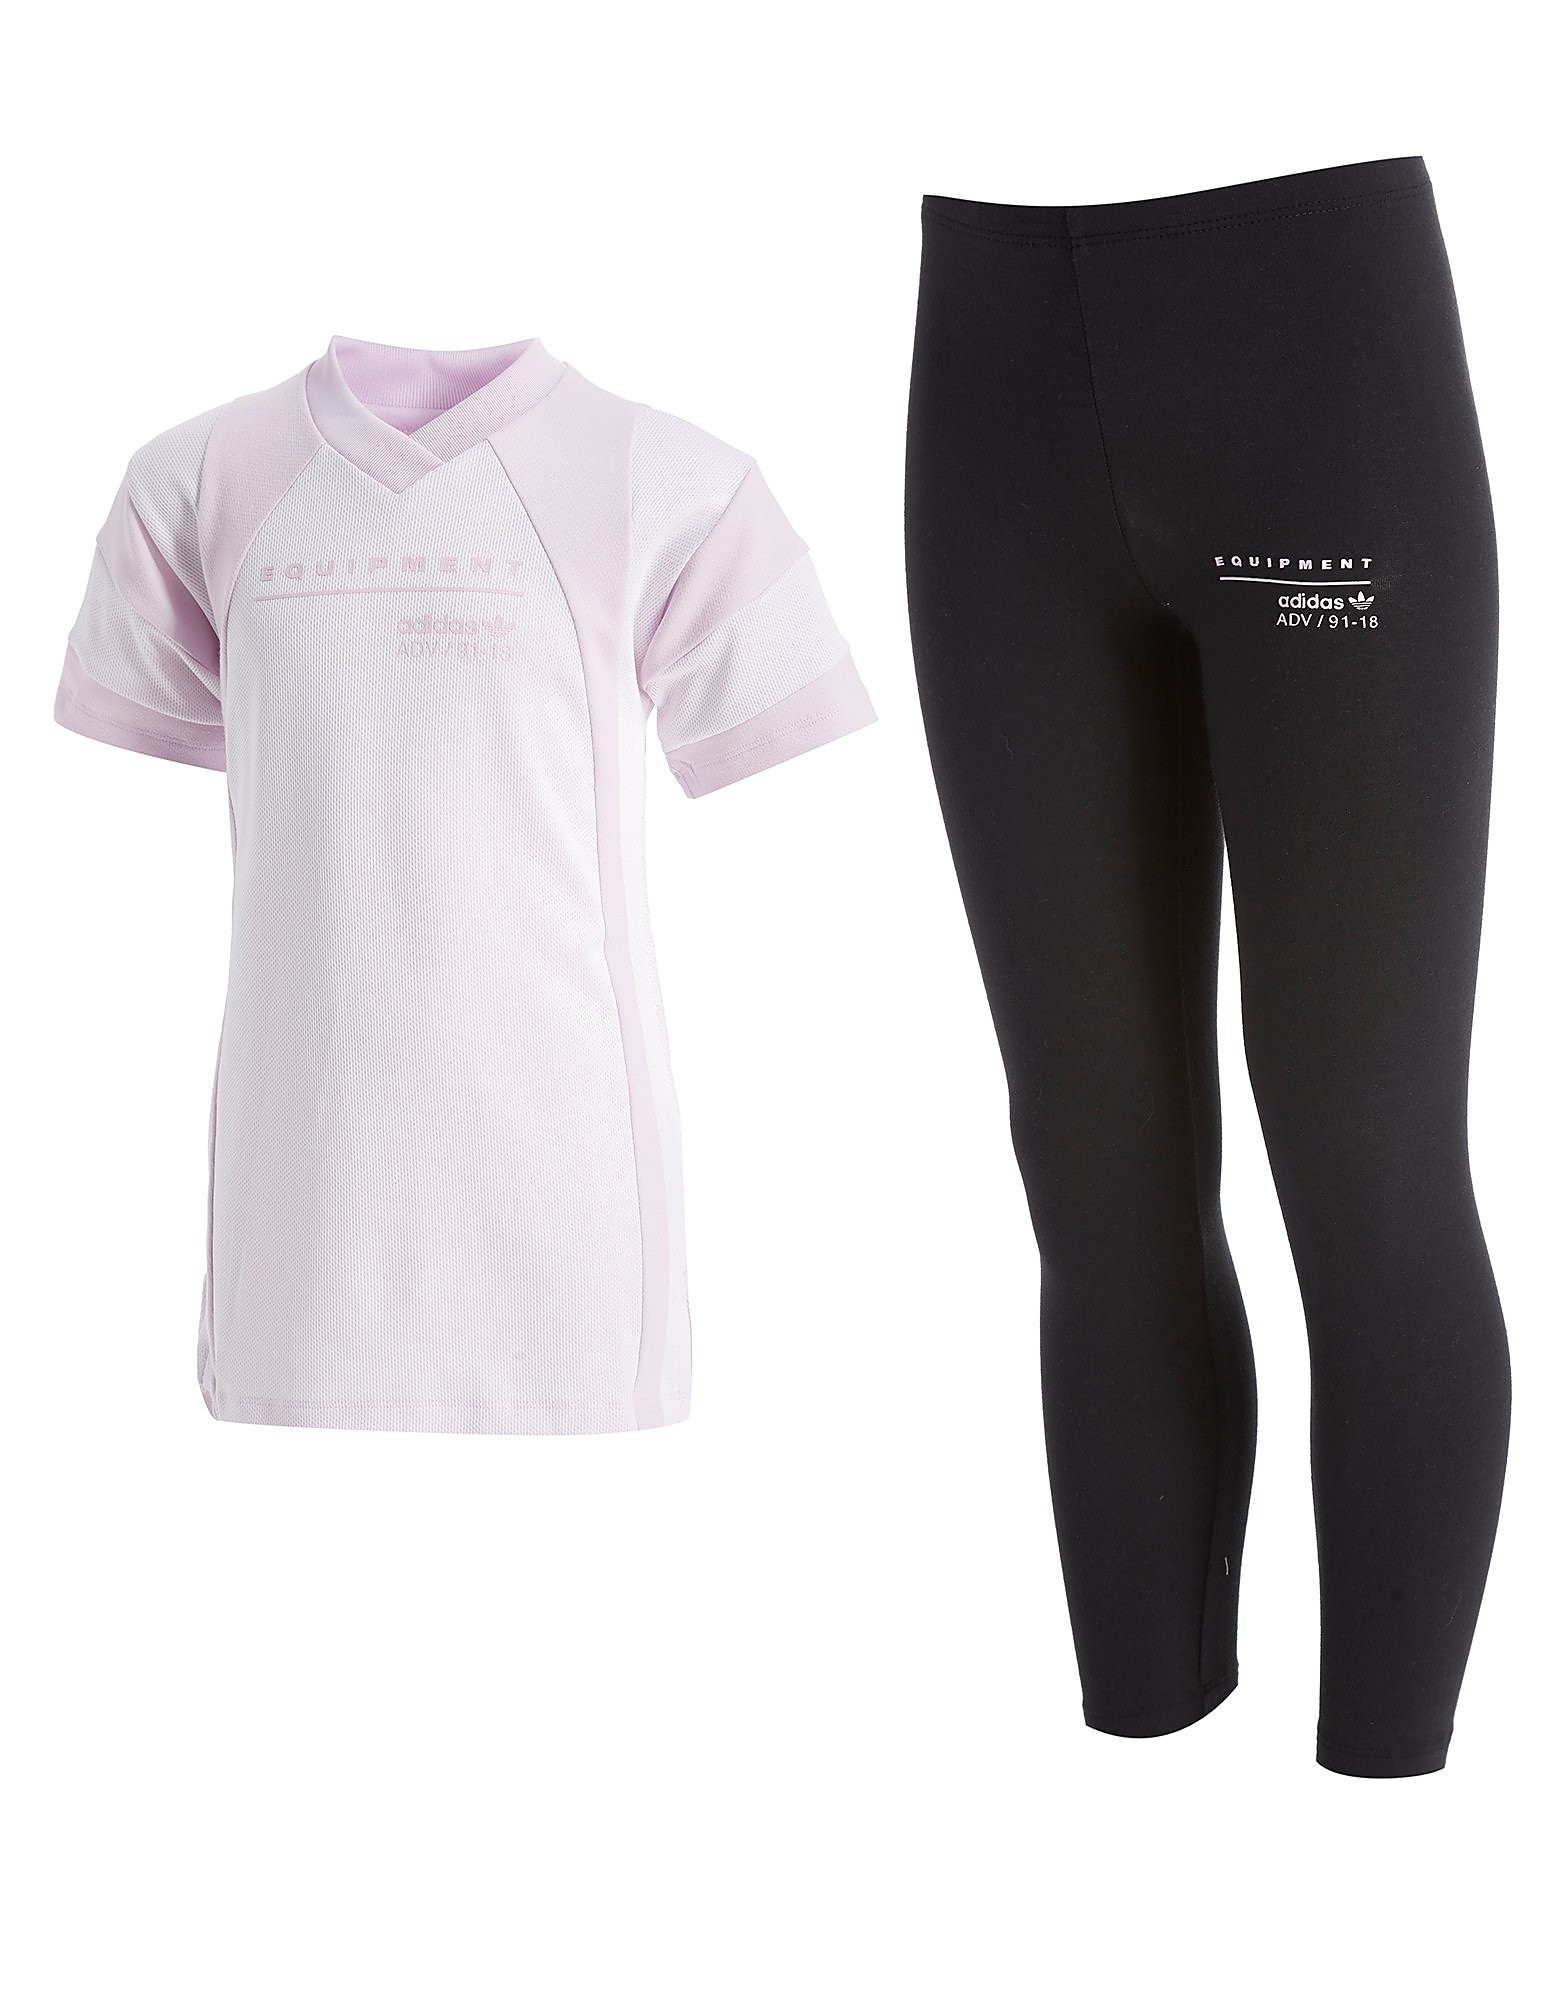 adidas Originals Girls' EQT T-Shirt & Legging Set Children